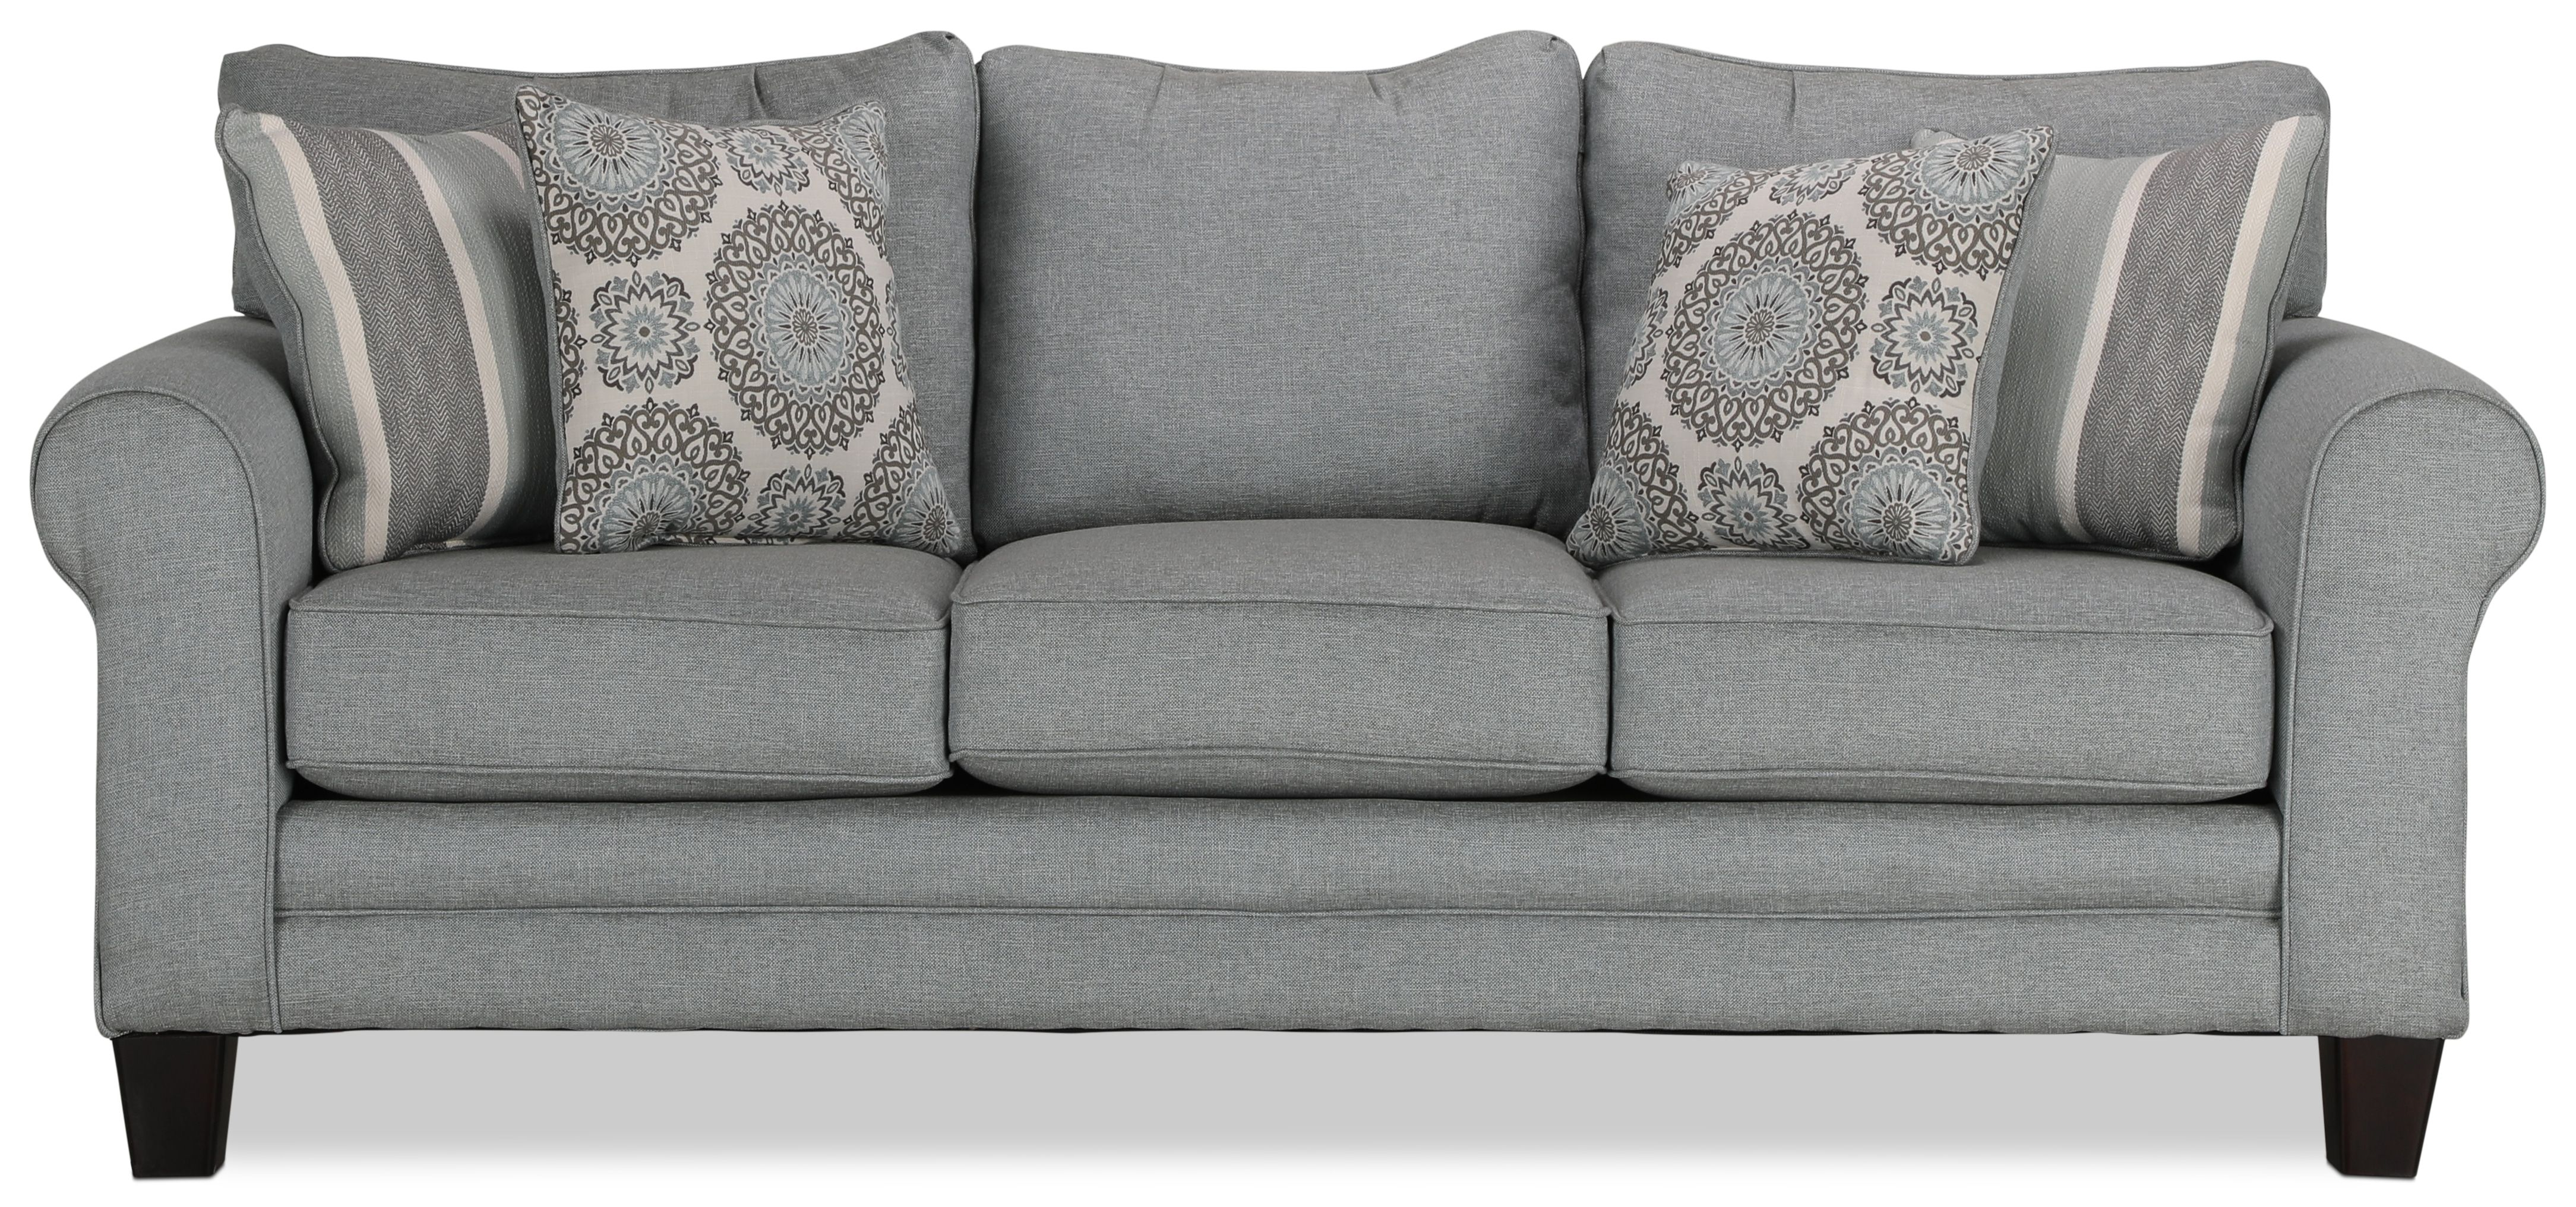 Shop At Levin S For A Wide Selection Of Furniture And Mattresses Enhance Your Home With Stylish Furniture Classic Living Room Living Room Sets Levin Furniture